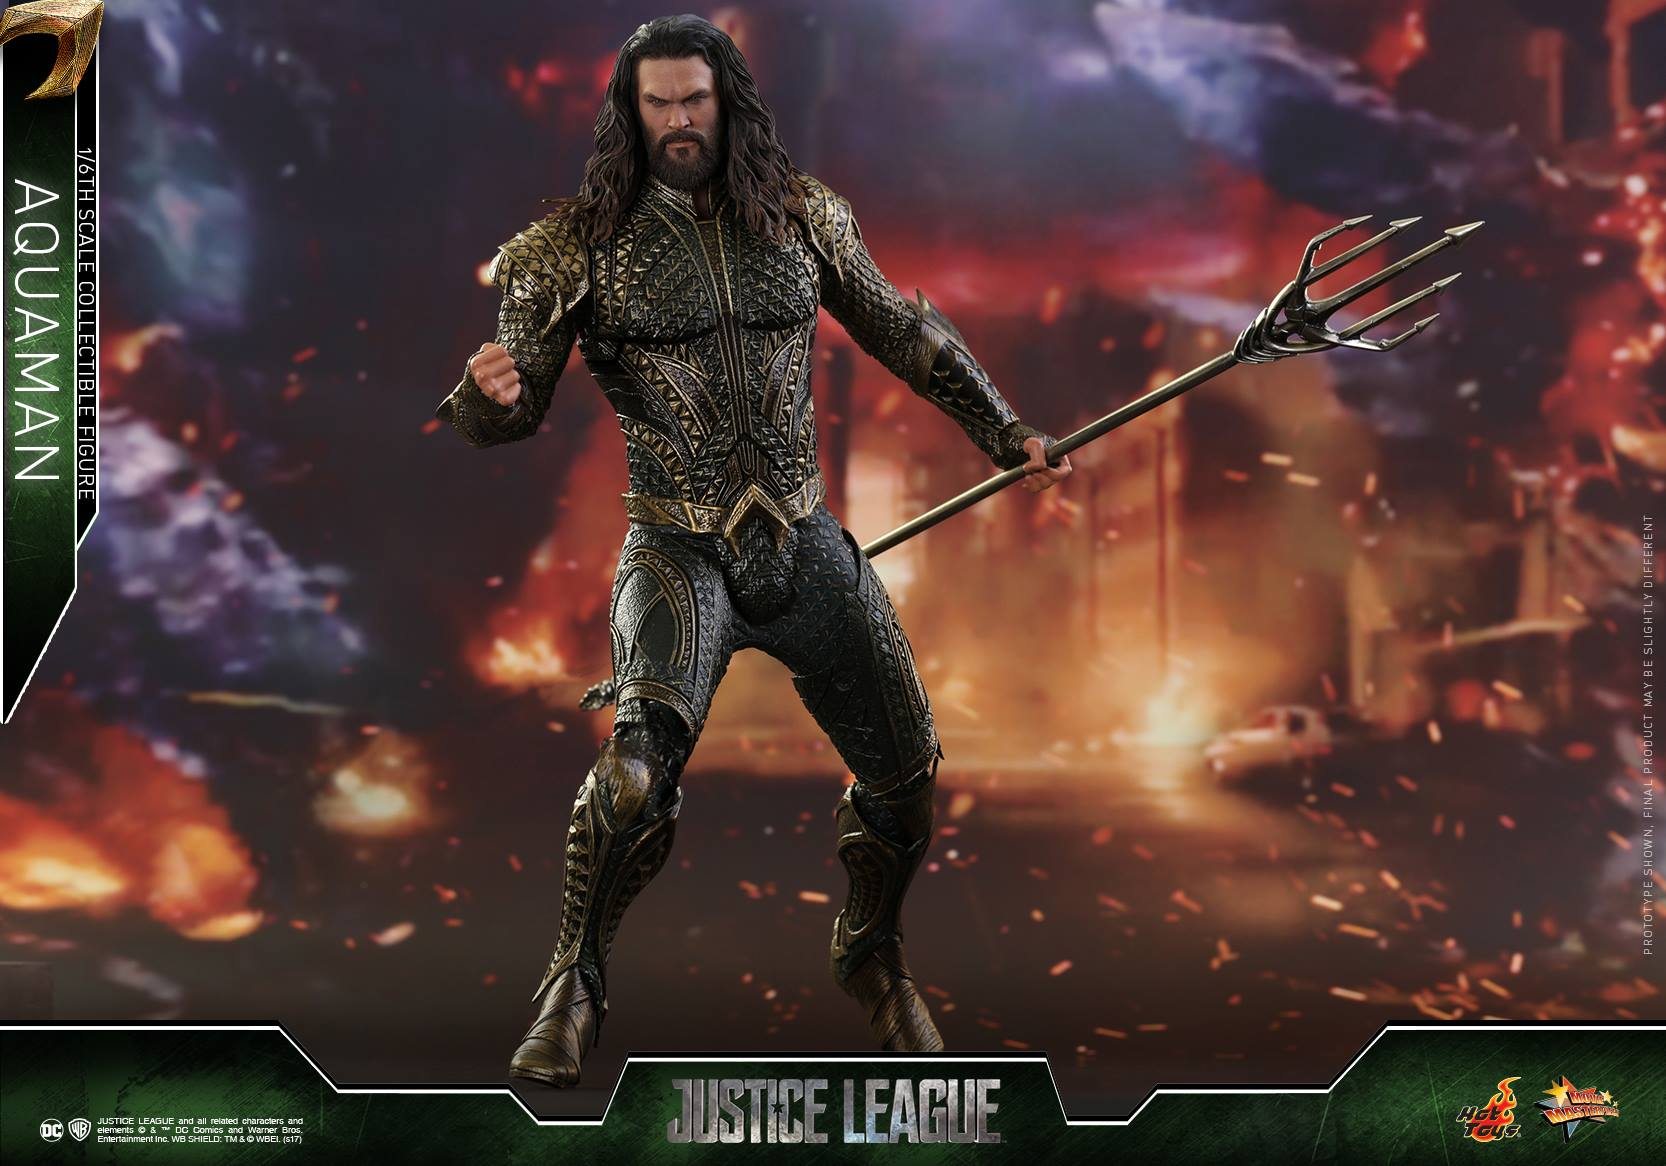 Hot-Toys-Justice-League-Aquaman-017